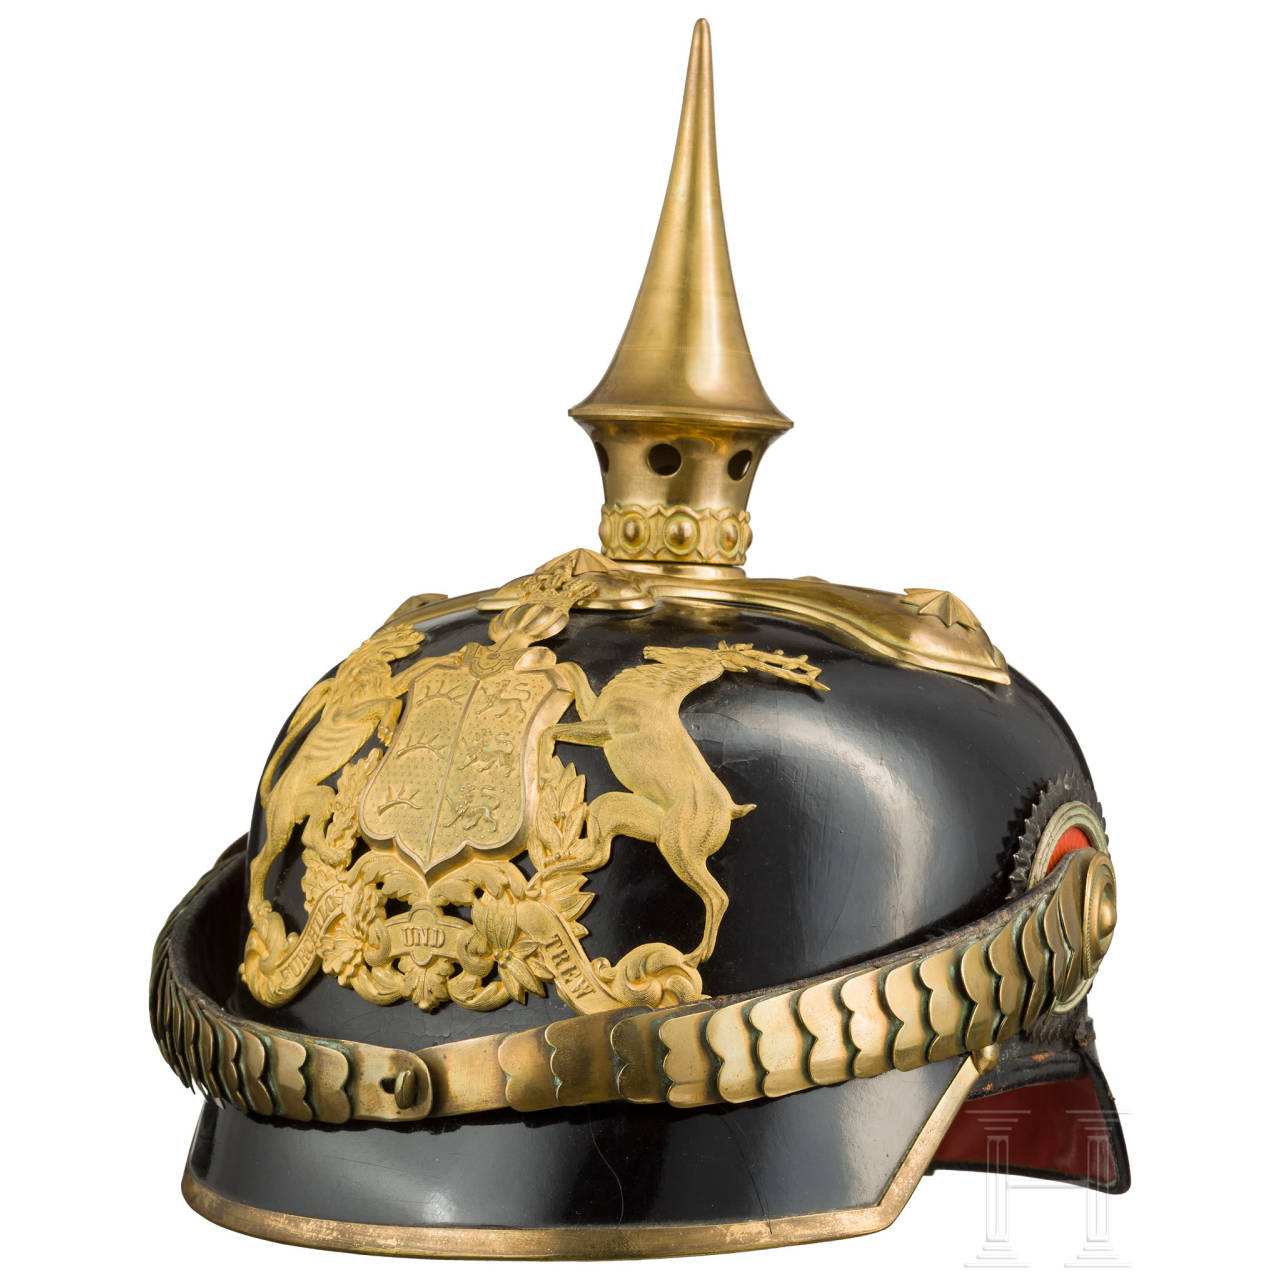 A helmet for cavalry officers, worn since 1897